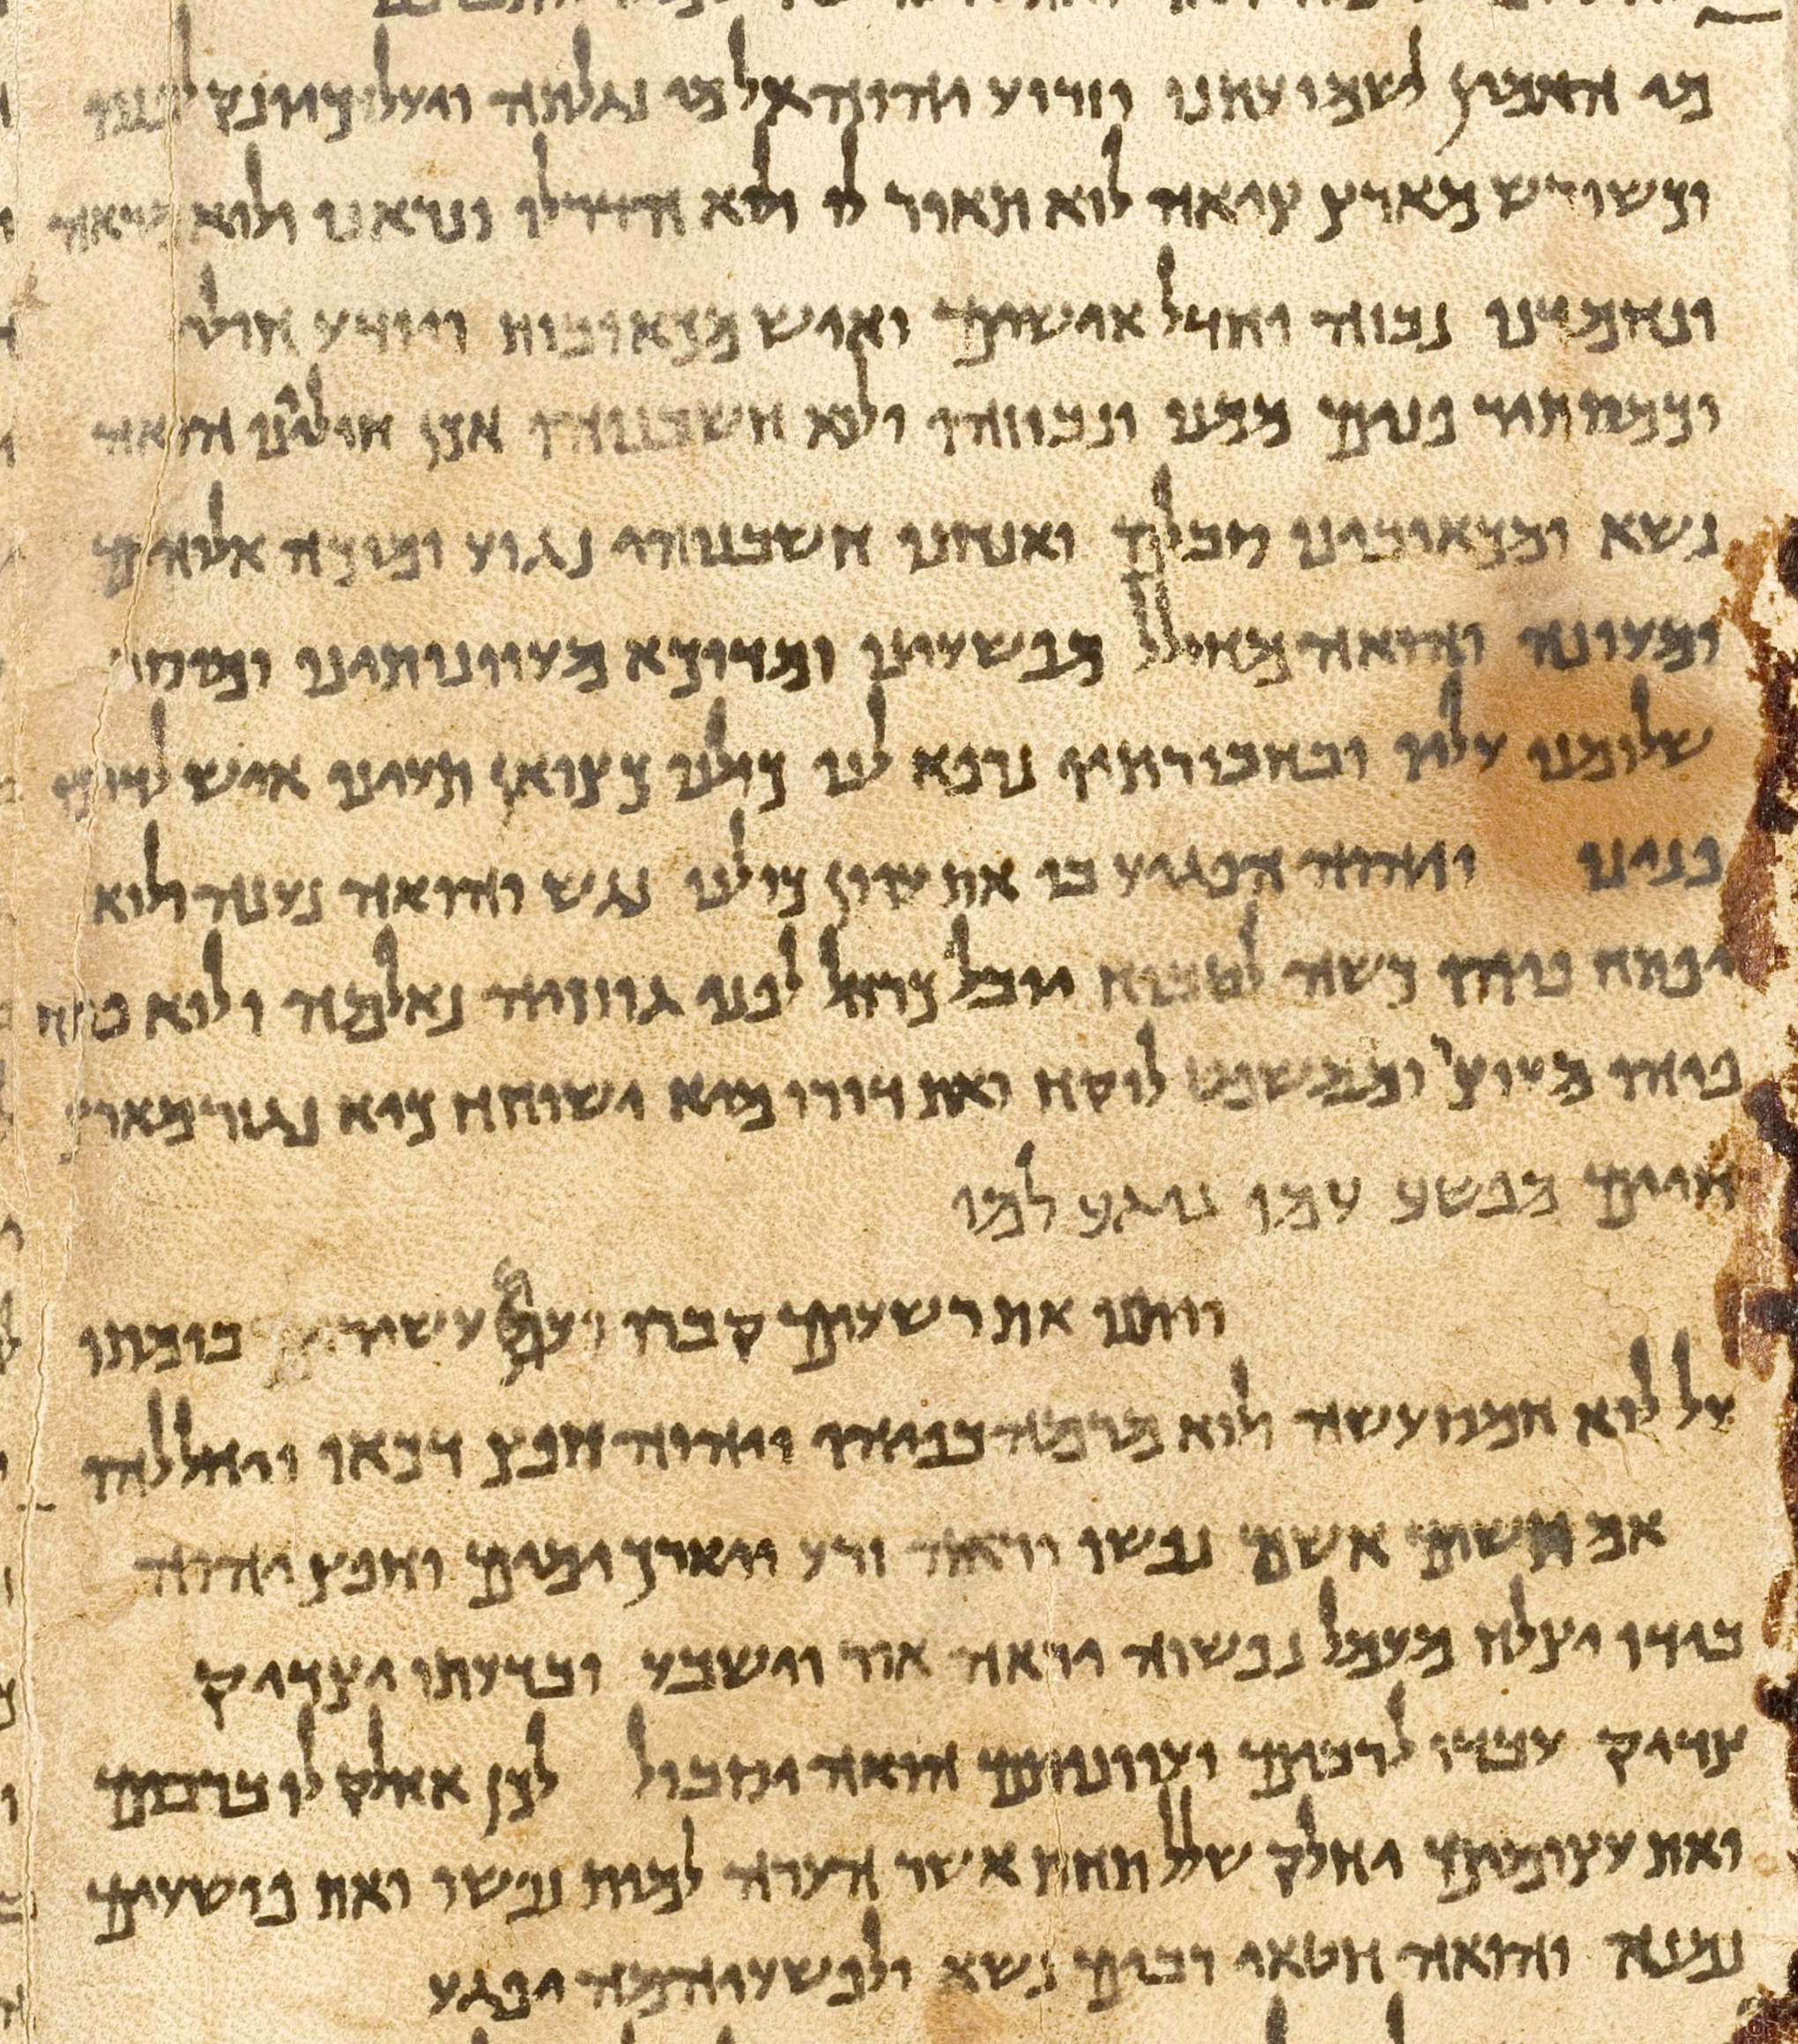 a report on the dead sea scrolls In the dead sea scrolls, professor gary a rendsburgandmdasha dedicated dead sea scrolls scholar who has spent decades immersed in the study of this amazing findandmdashtells you what the scrolls are and what they contain, and describes the intriguing story of how their unparalleled insights into religious and ancient history came into focus.